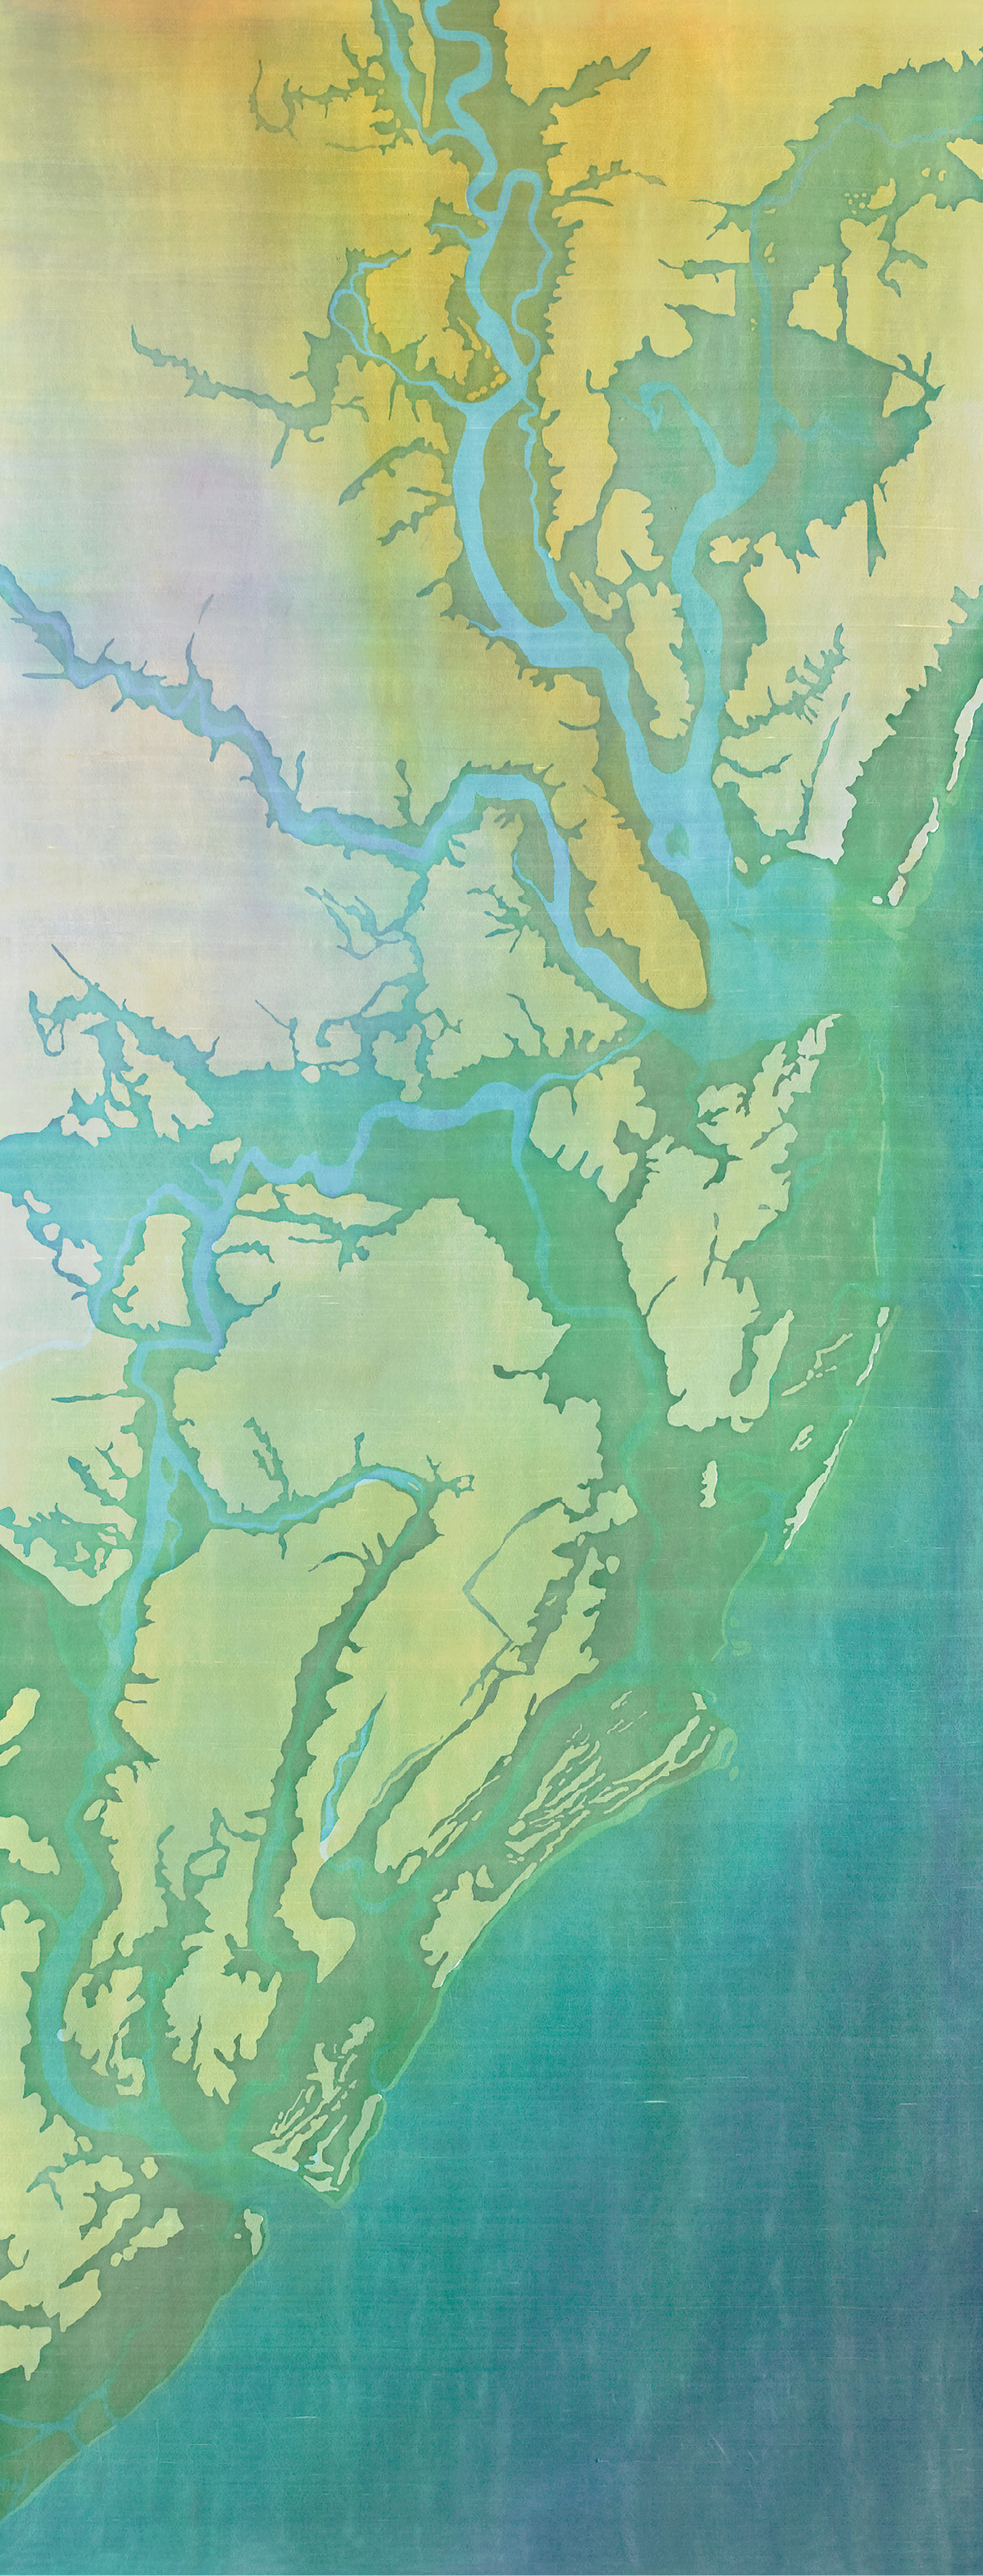 """Nature Acts: Fraser's batik, Charleston Airbourne Flooded (batik on silk, 97 x 35 inches, 2010) depicts NOAA's projections of the Lowcountry's 4.6-foot sea level rise by the year 2100. It will become a 98-foot centerpiece for """"Awakening V"""" as it hangs on the Joseph Floyd Manor with the added words, """"We argue. Nature acts.""""—a play off Voltaire; image courtesy of Mary Edna Fraser"""